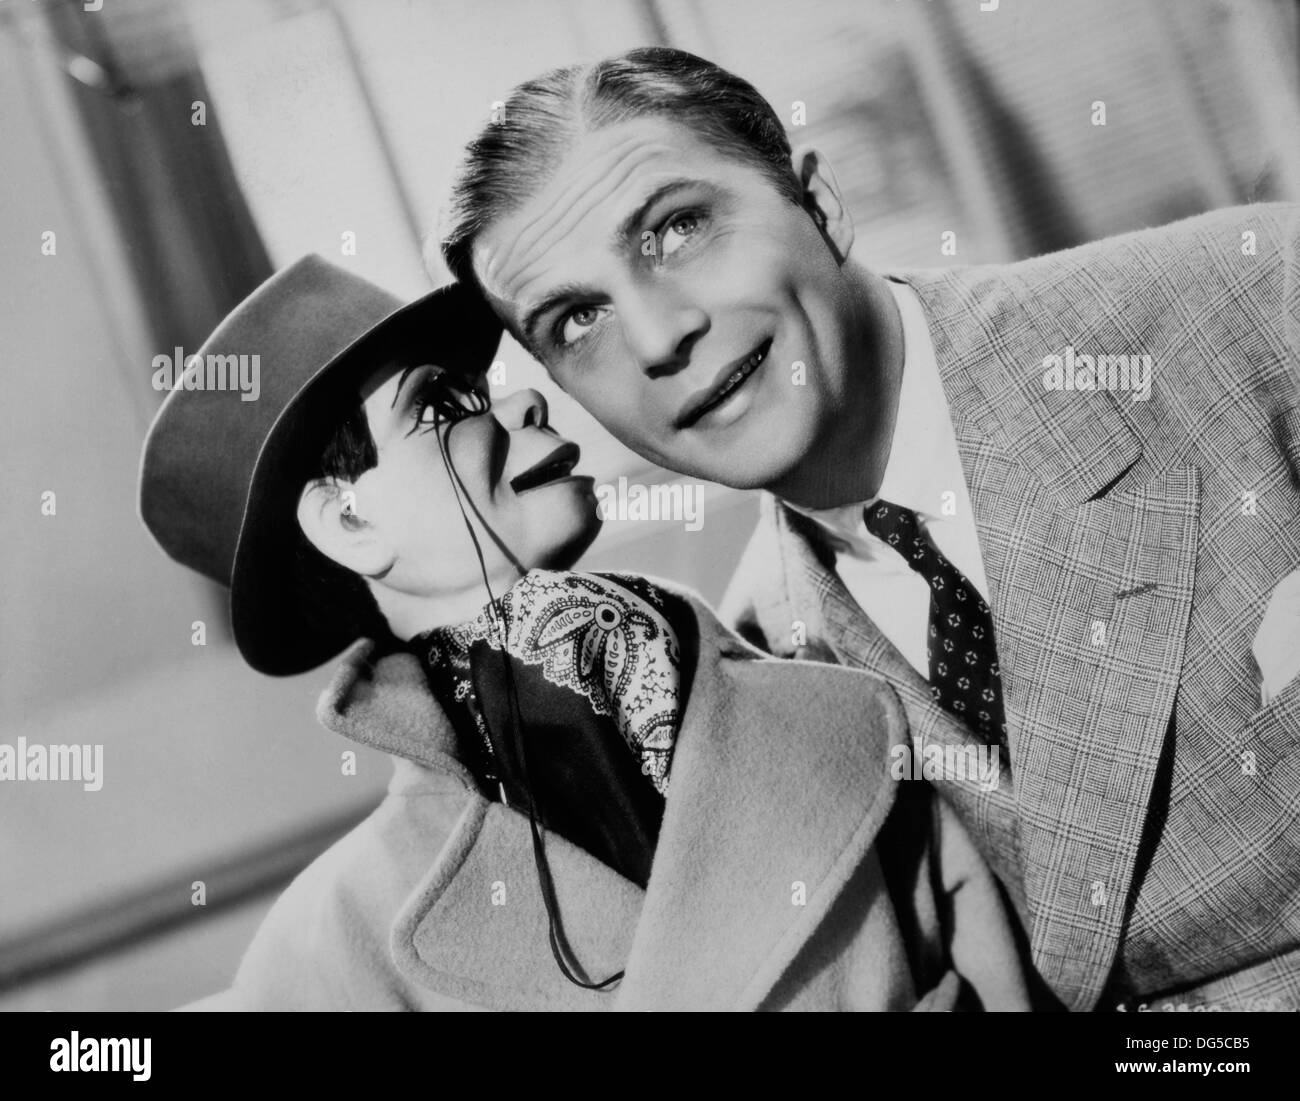 Edgar Bergen with Charlie McCarthy, on-set of the Film, 'The Goldwyn Follies', Samuel Goldwyn Productions with Distribution via United Artists, 1938 - Stock Image